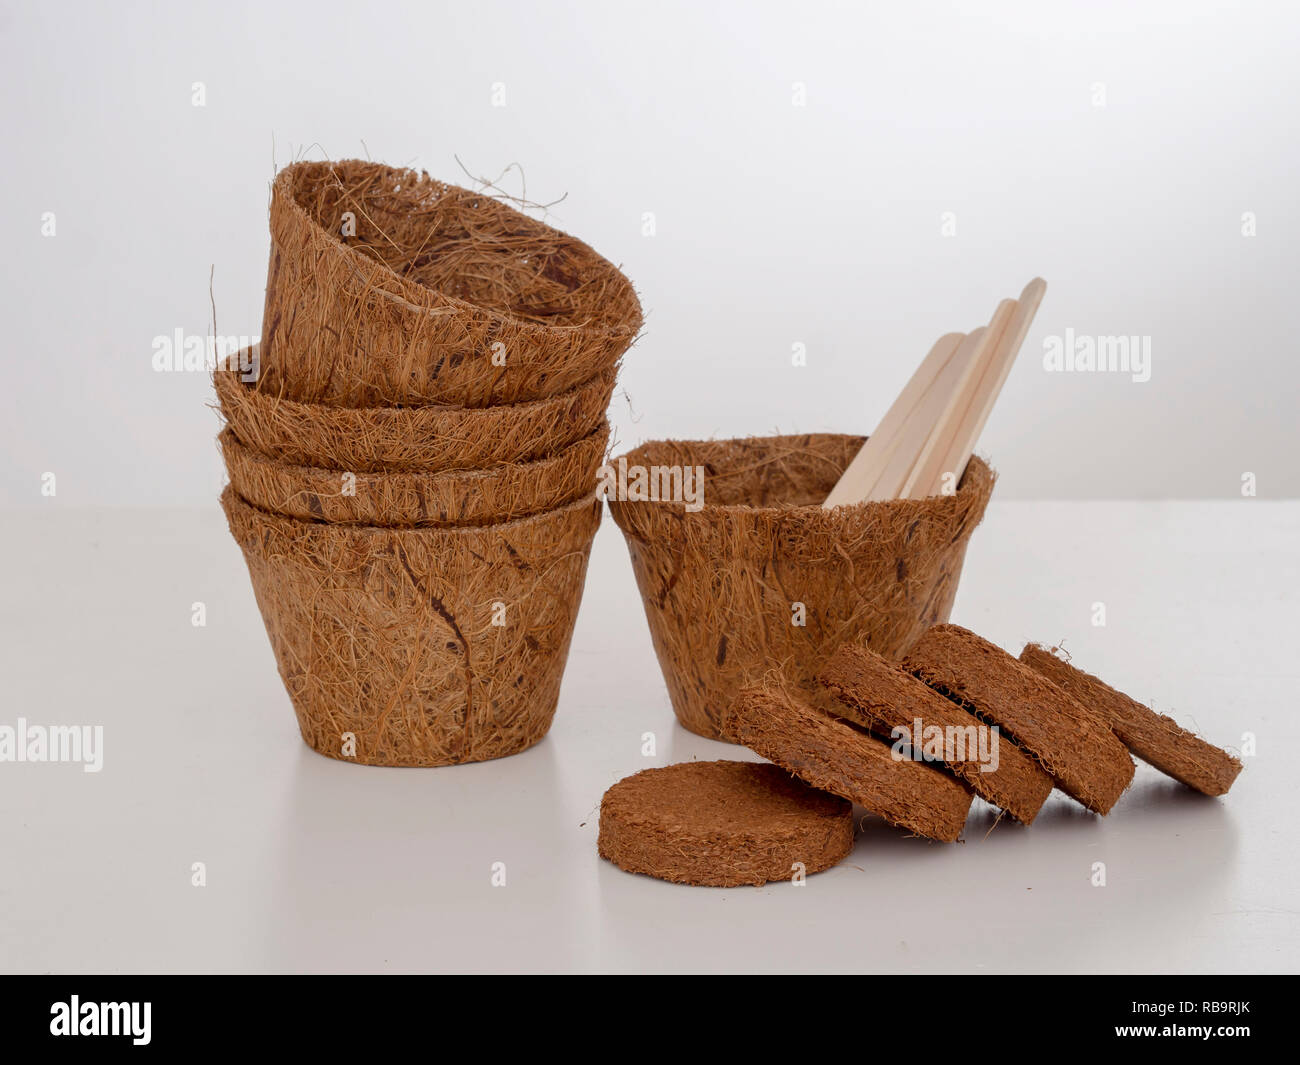 Coir plant pots and compressed compost with wooden labels. Environmentally friendly spring gardening. Pale background. - Stock Image